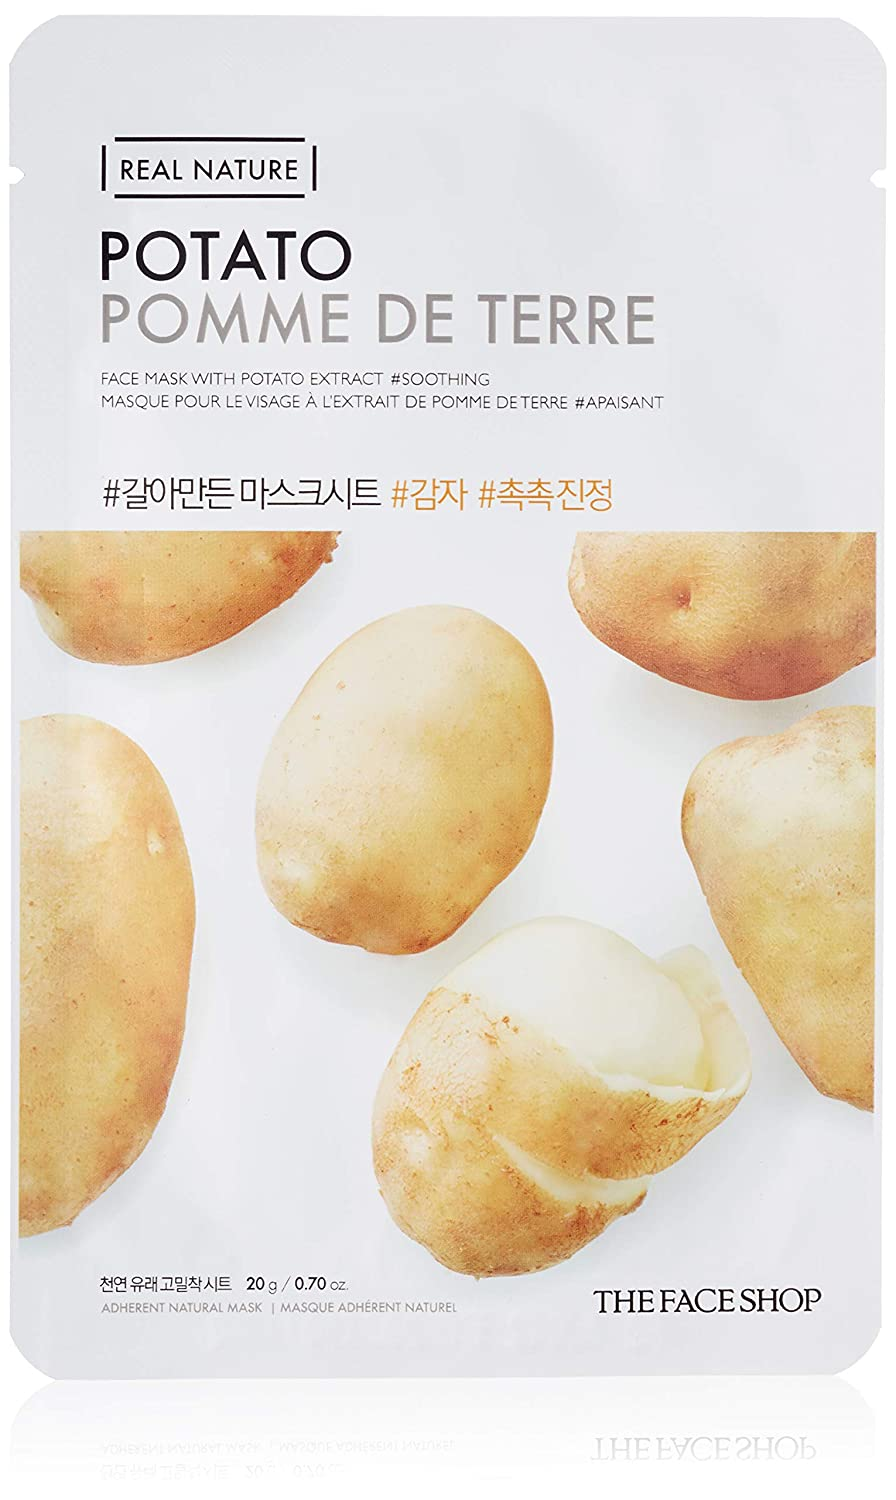 THE FACE SHOP Real Nature Mask Sheet Potato